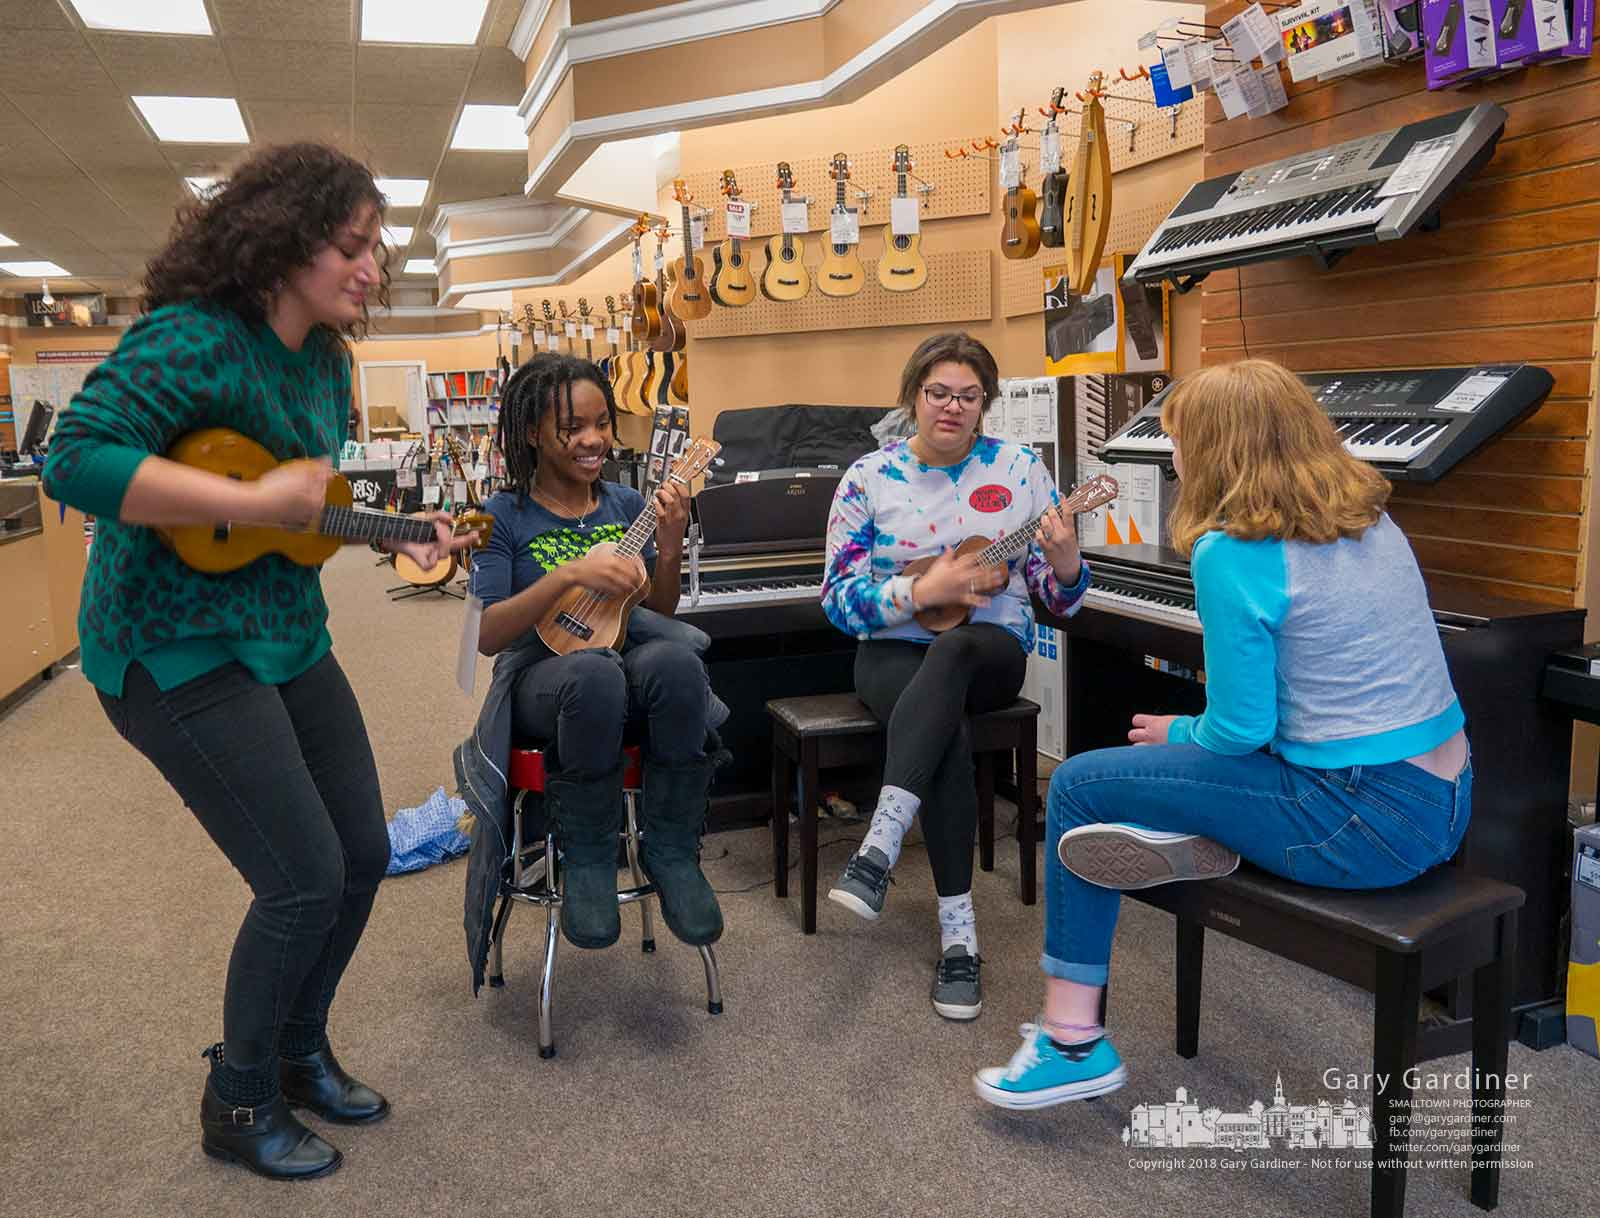 A trio of musicians gets an impromptu ukulele lesson from an instructor at Music & Arts in Uptown as one of them waits for her instructor to finish an earlier lesson. My Final Photo for March 29, 2018.